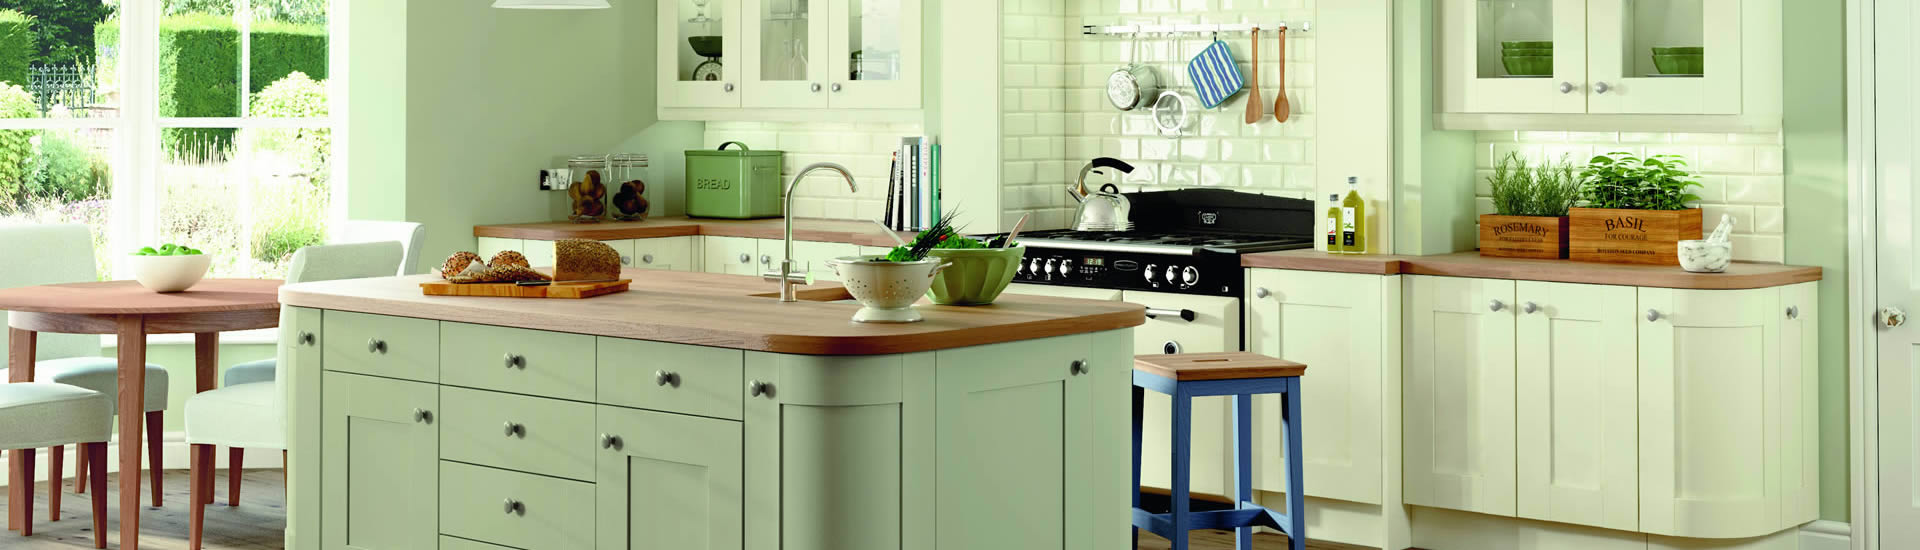 <span class='title t5'>KITCHENS</span><span class='text'>Beautiful kitchens<br>from expert fitters</span>